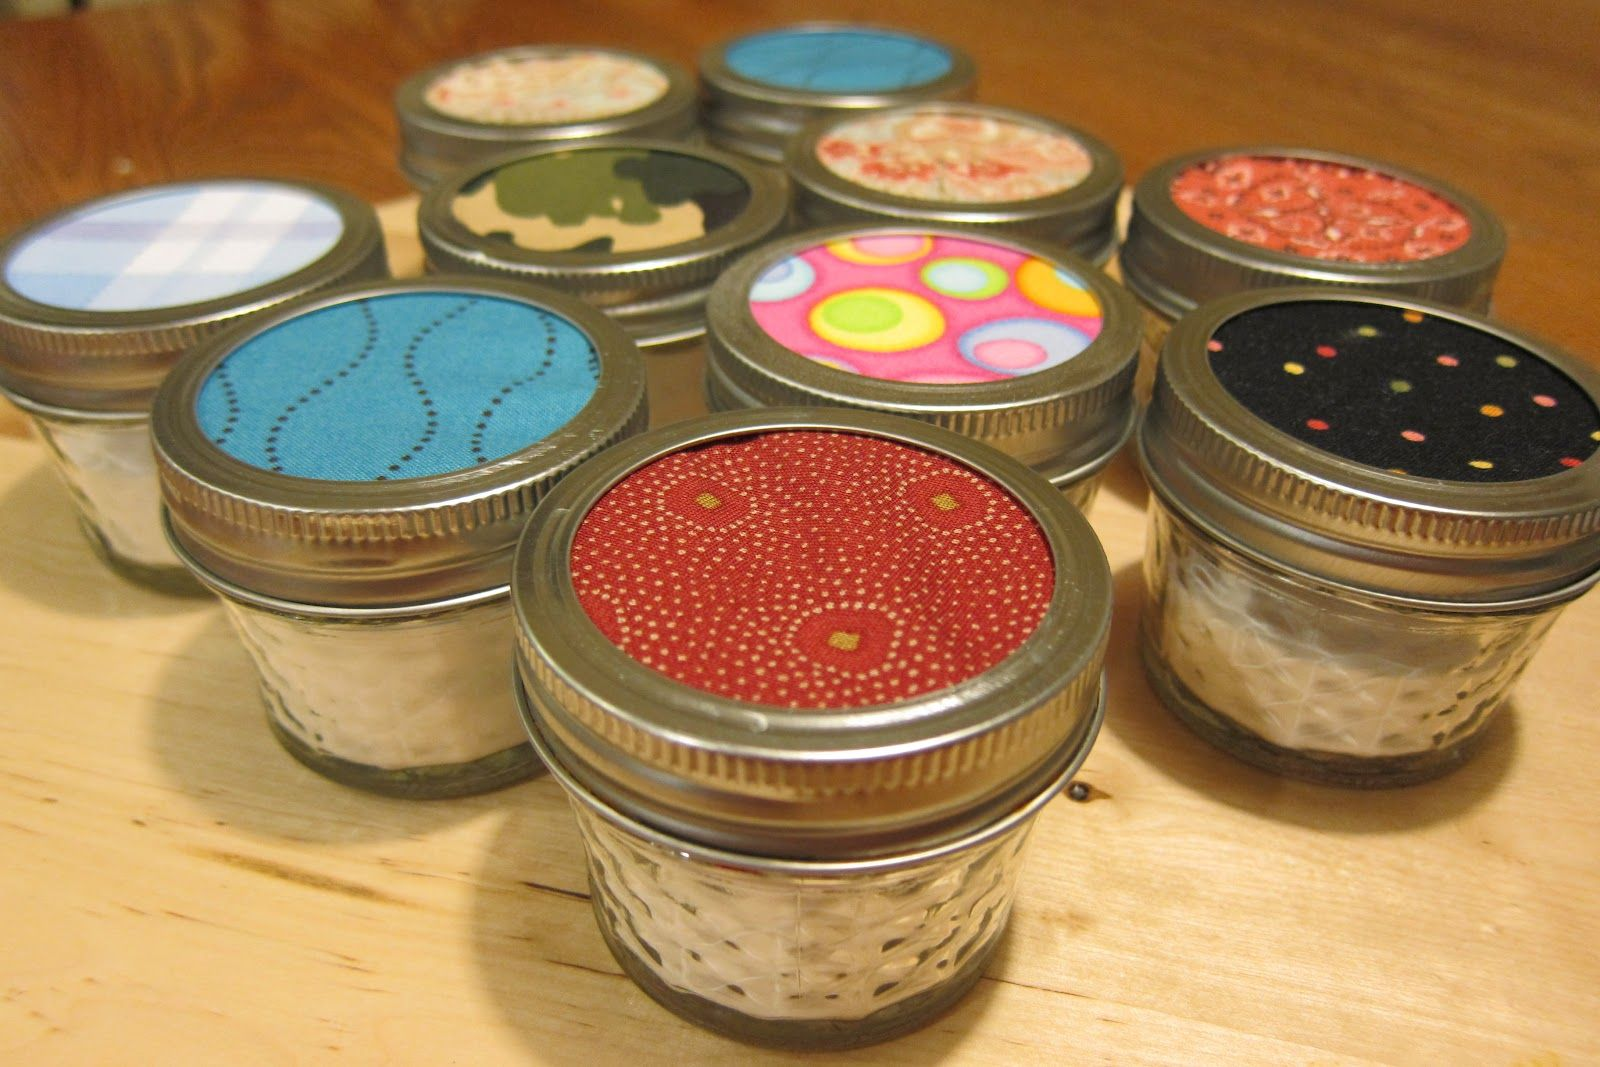 Air fresheners might incorporate it into an event for Baking soda air freshener recipe